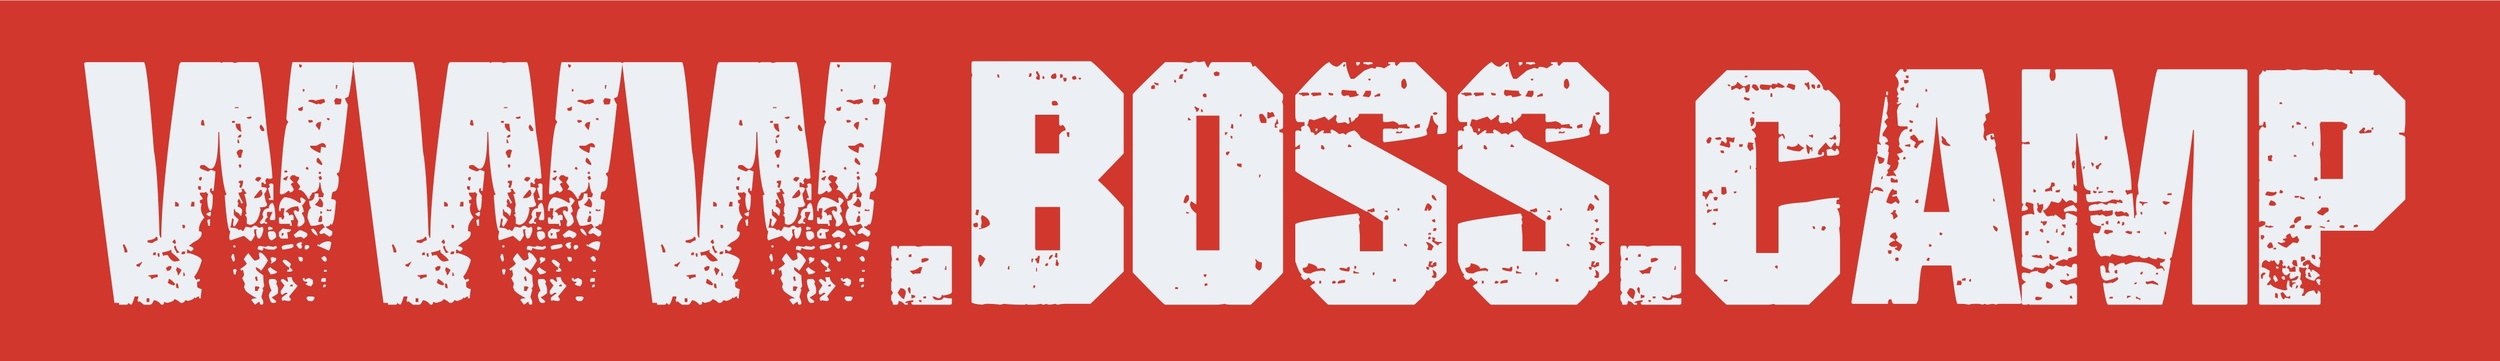 Improve employee performance in just one hour a week at www.boss.camp jpeg